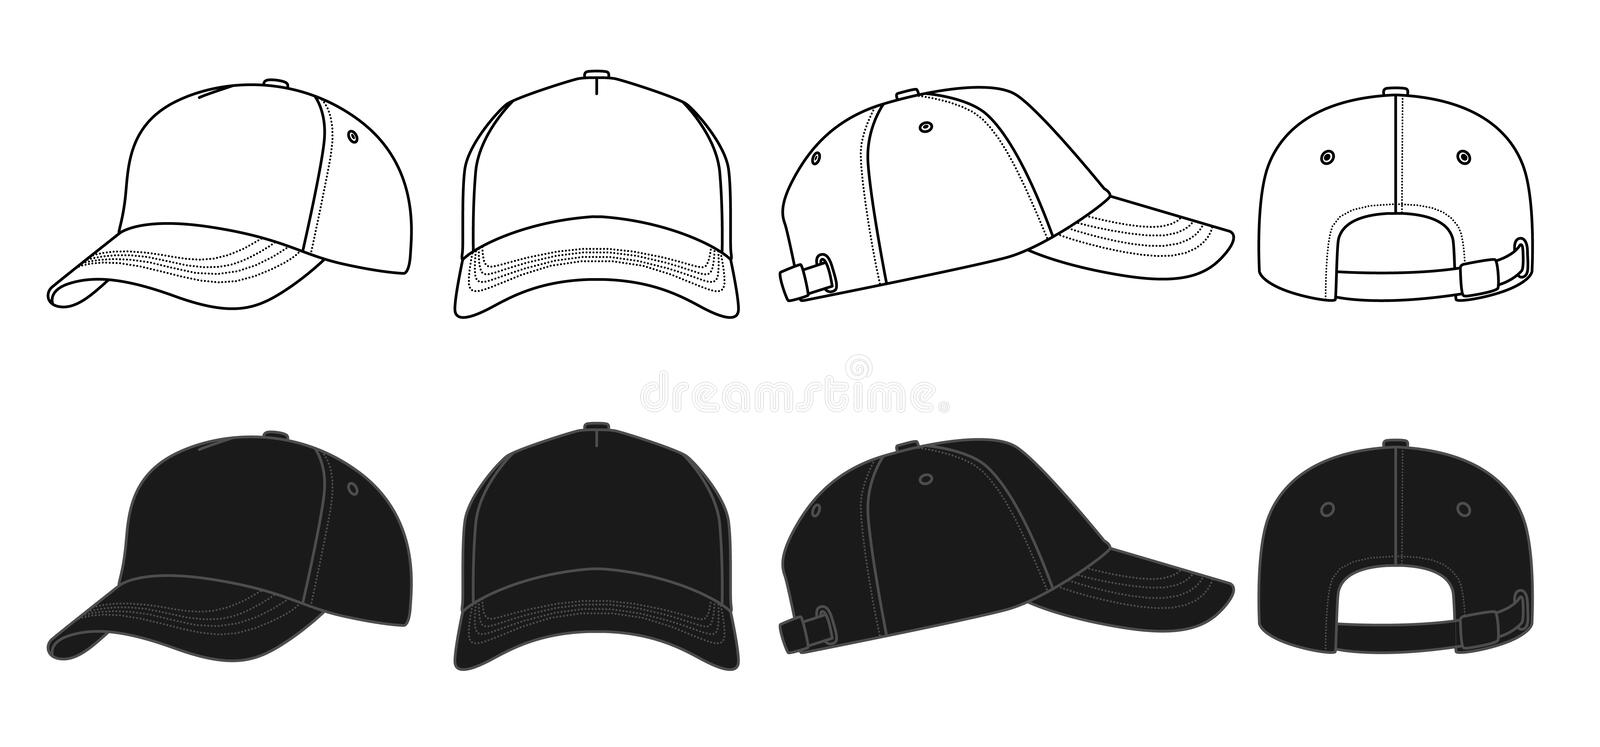 Outline template cap stock vector. Illustration of vector - 78011925